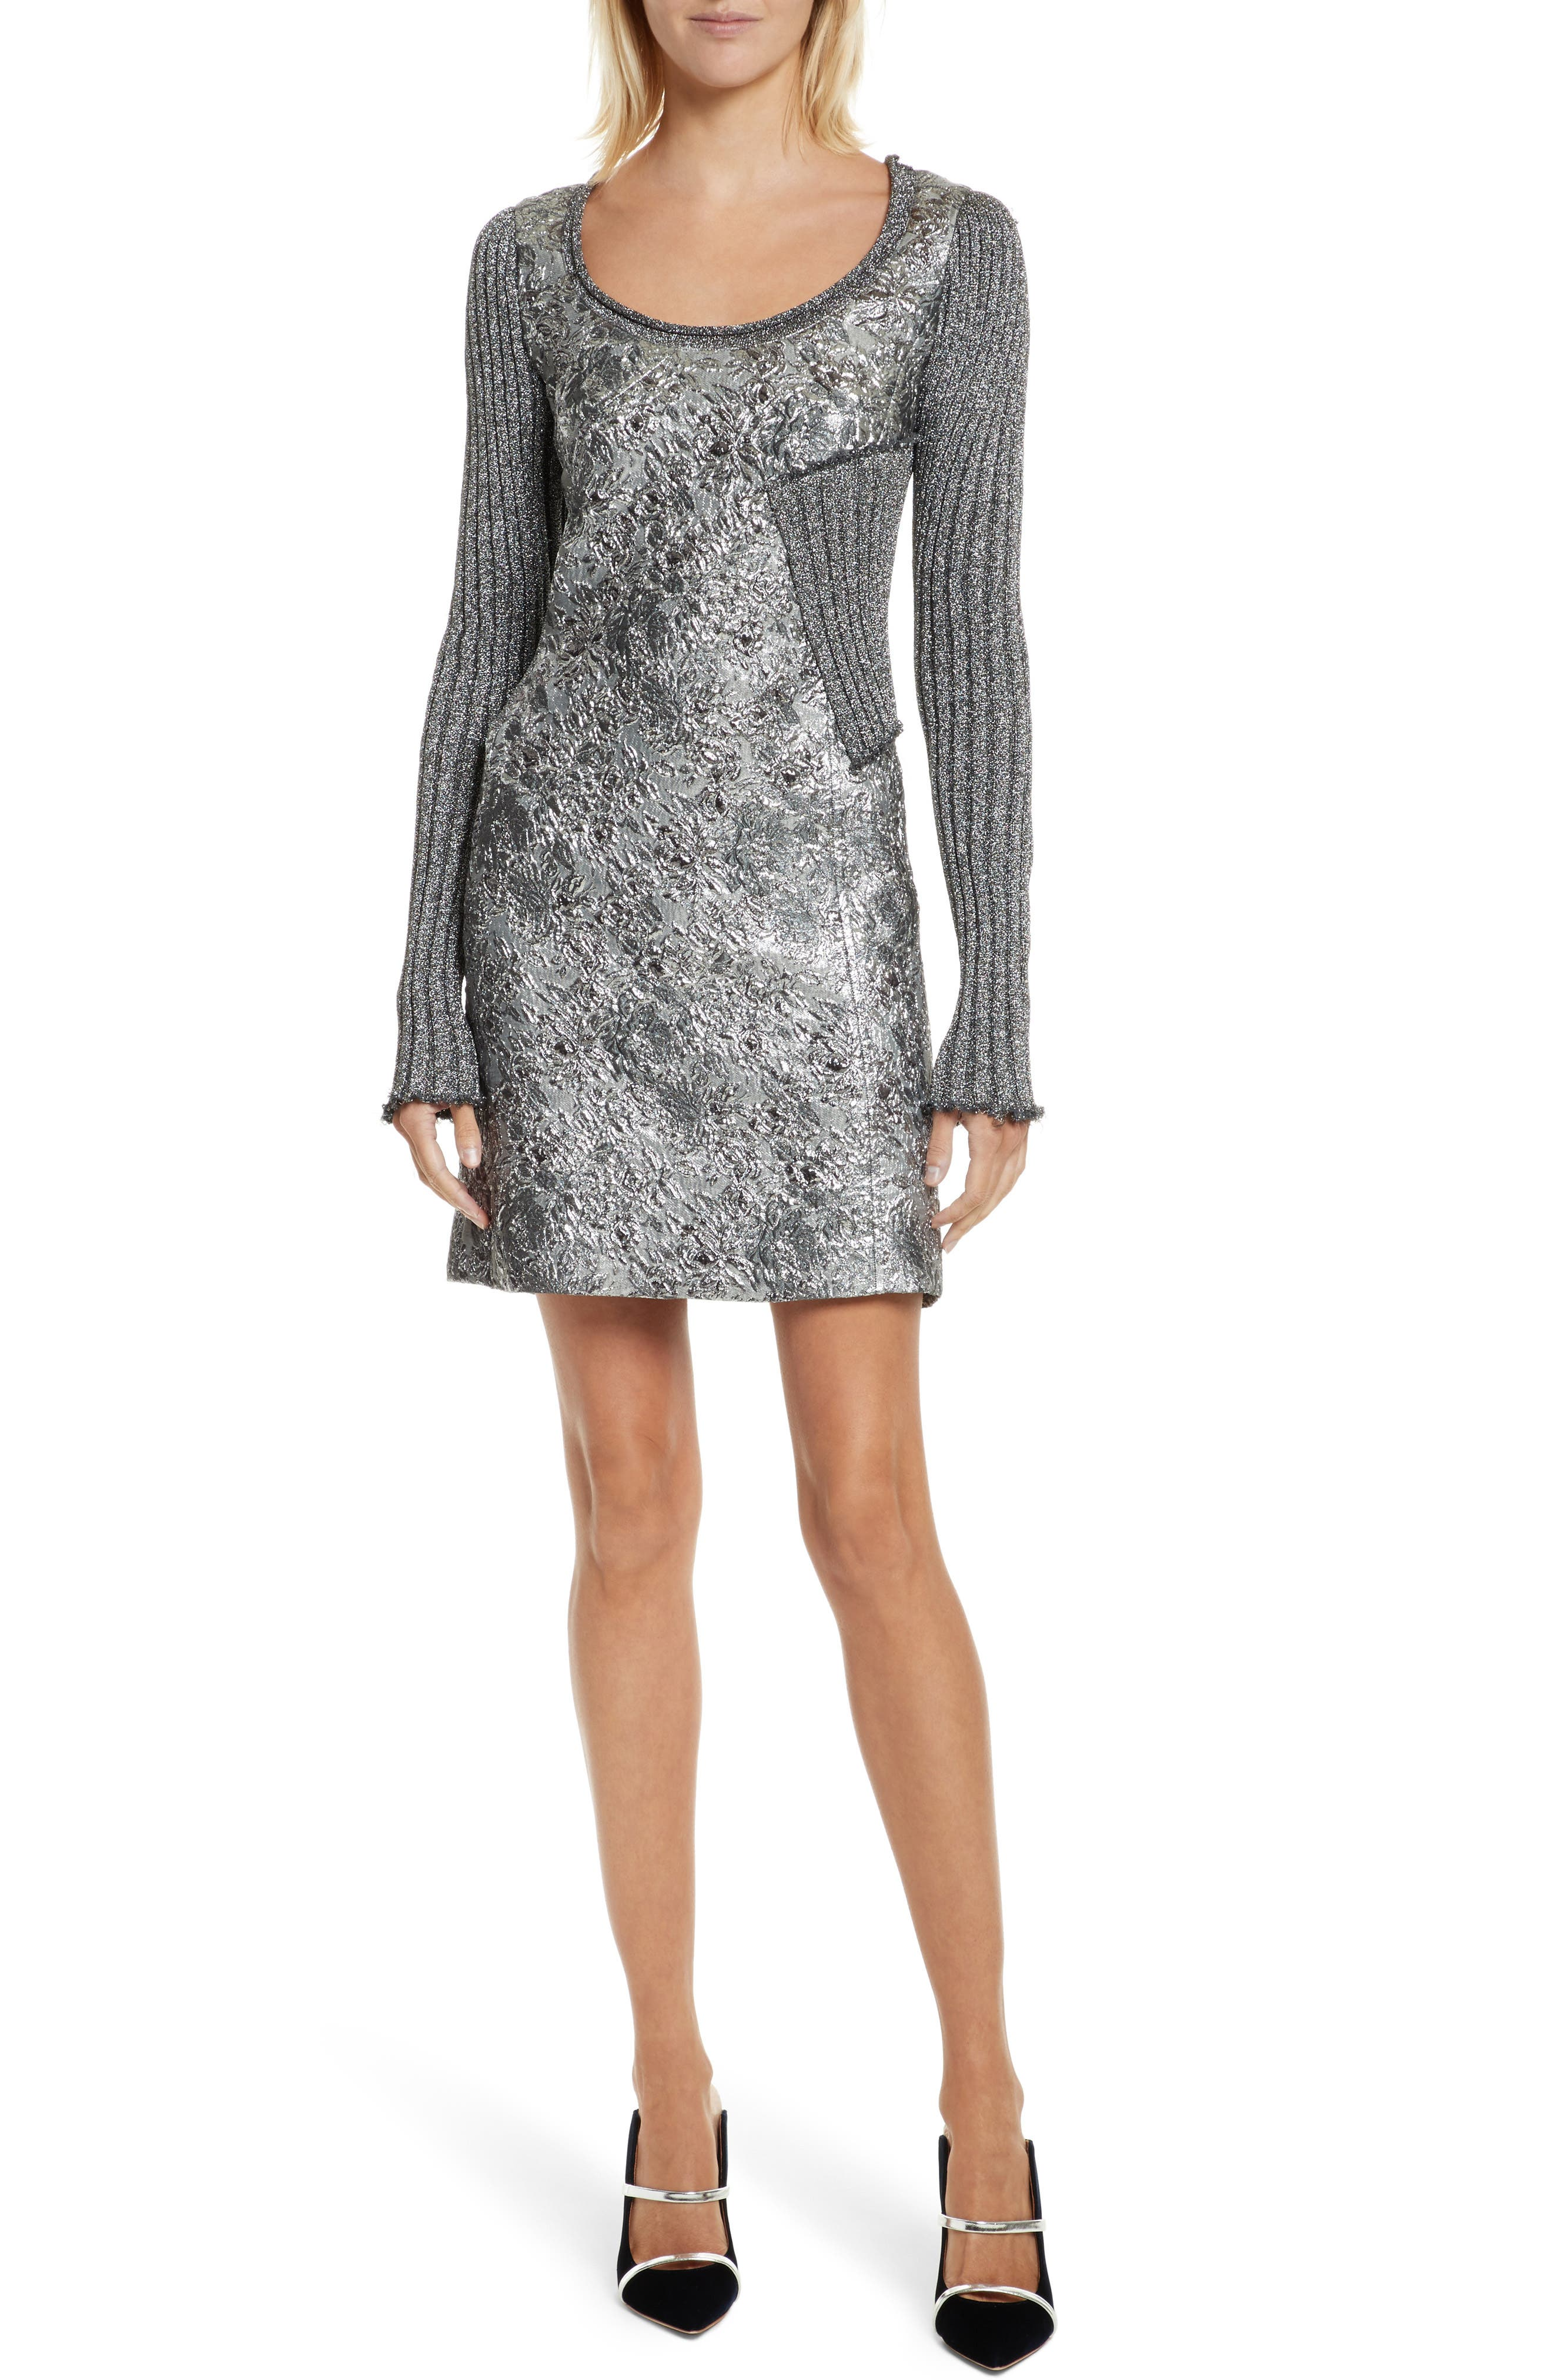 3.1 Phillip Lim Mixed Media Metallic Sweater Dress